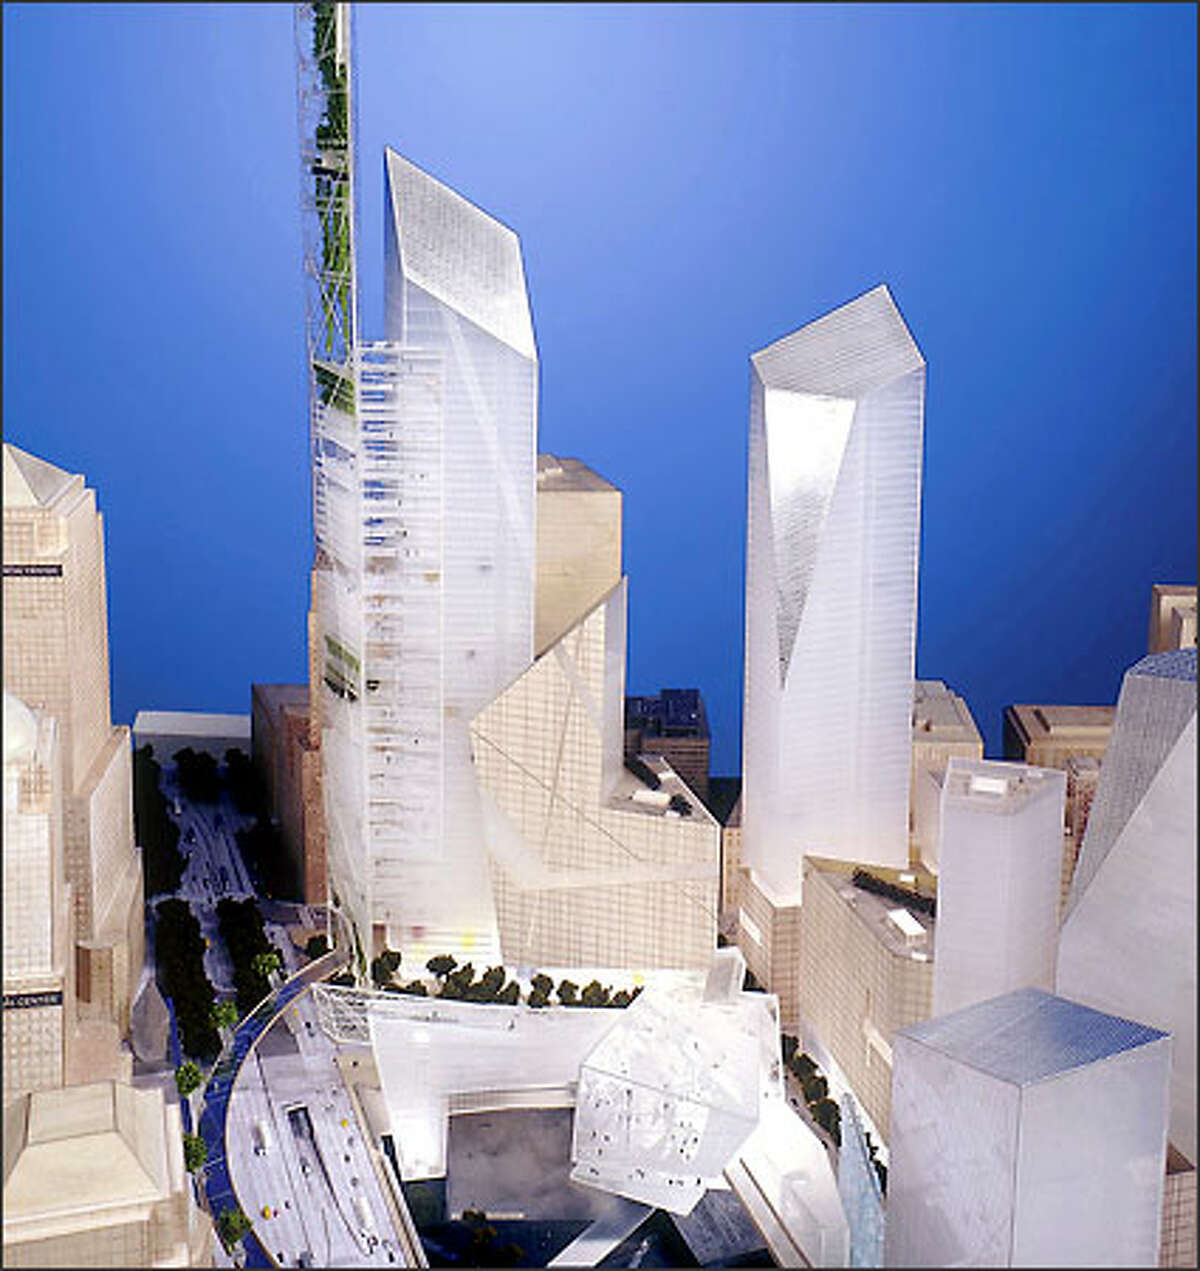 Architect Daniel Libeskind's design for the World Trade Center site in New York City calls for 70 stories of offices, with airy